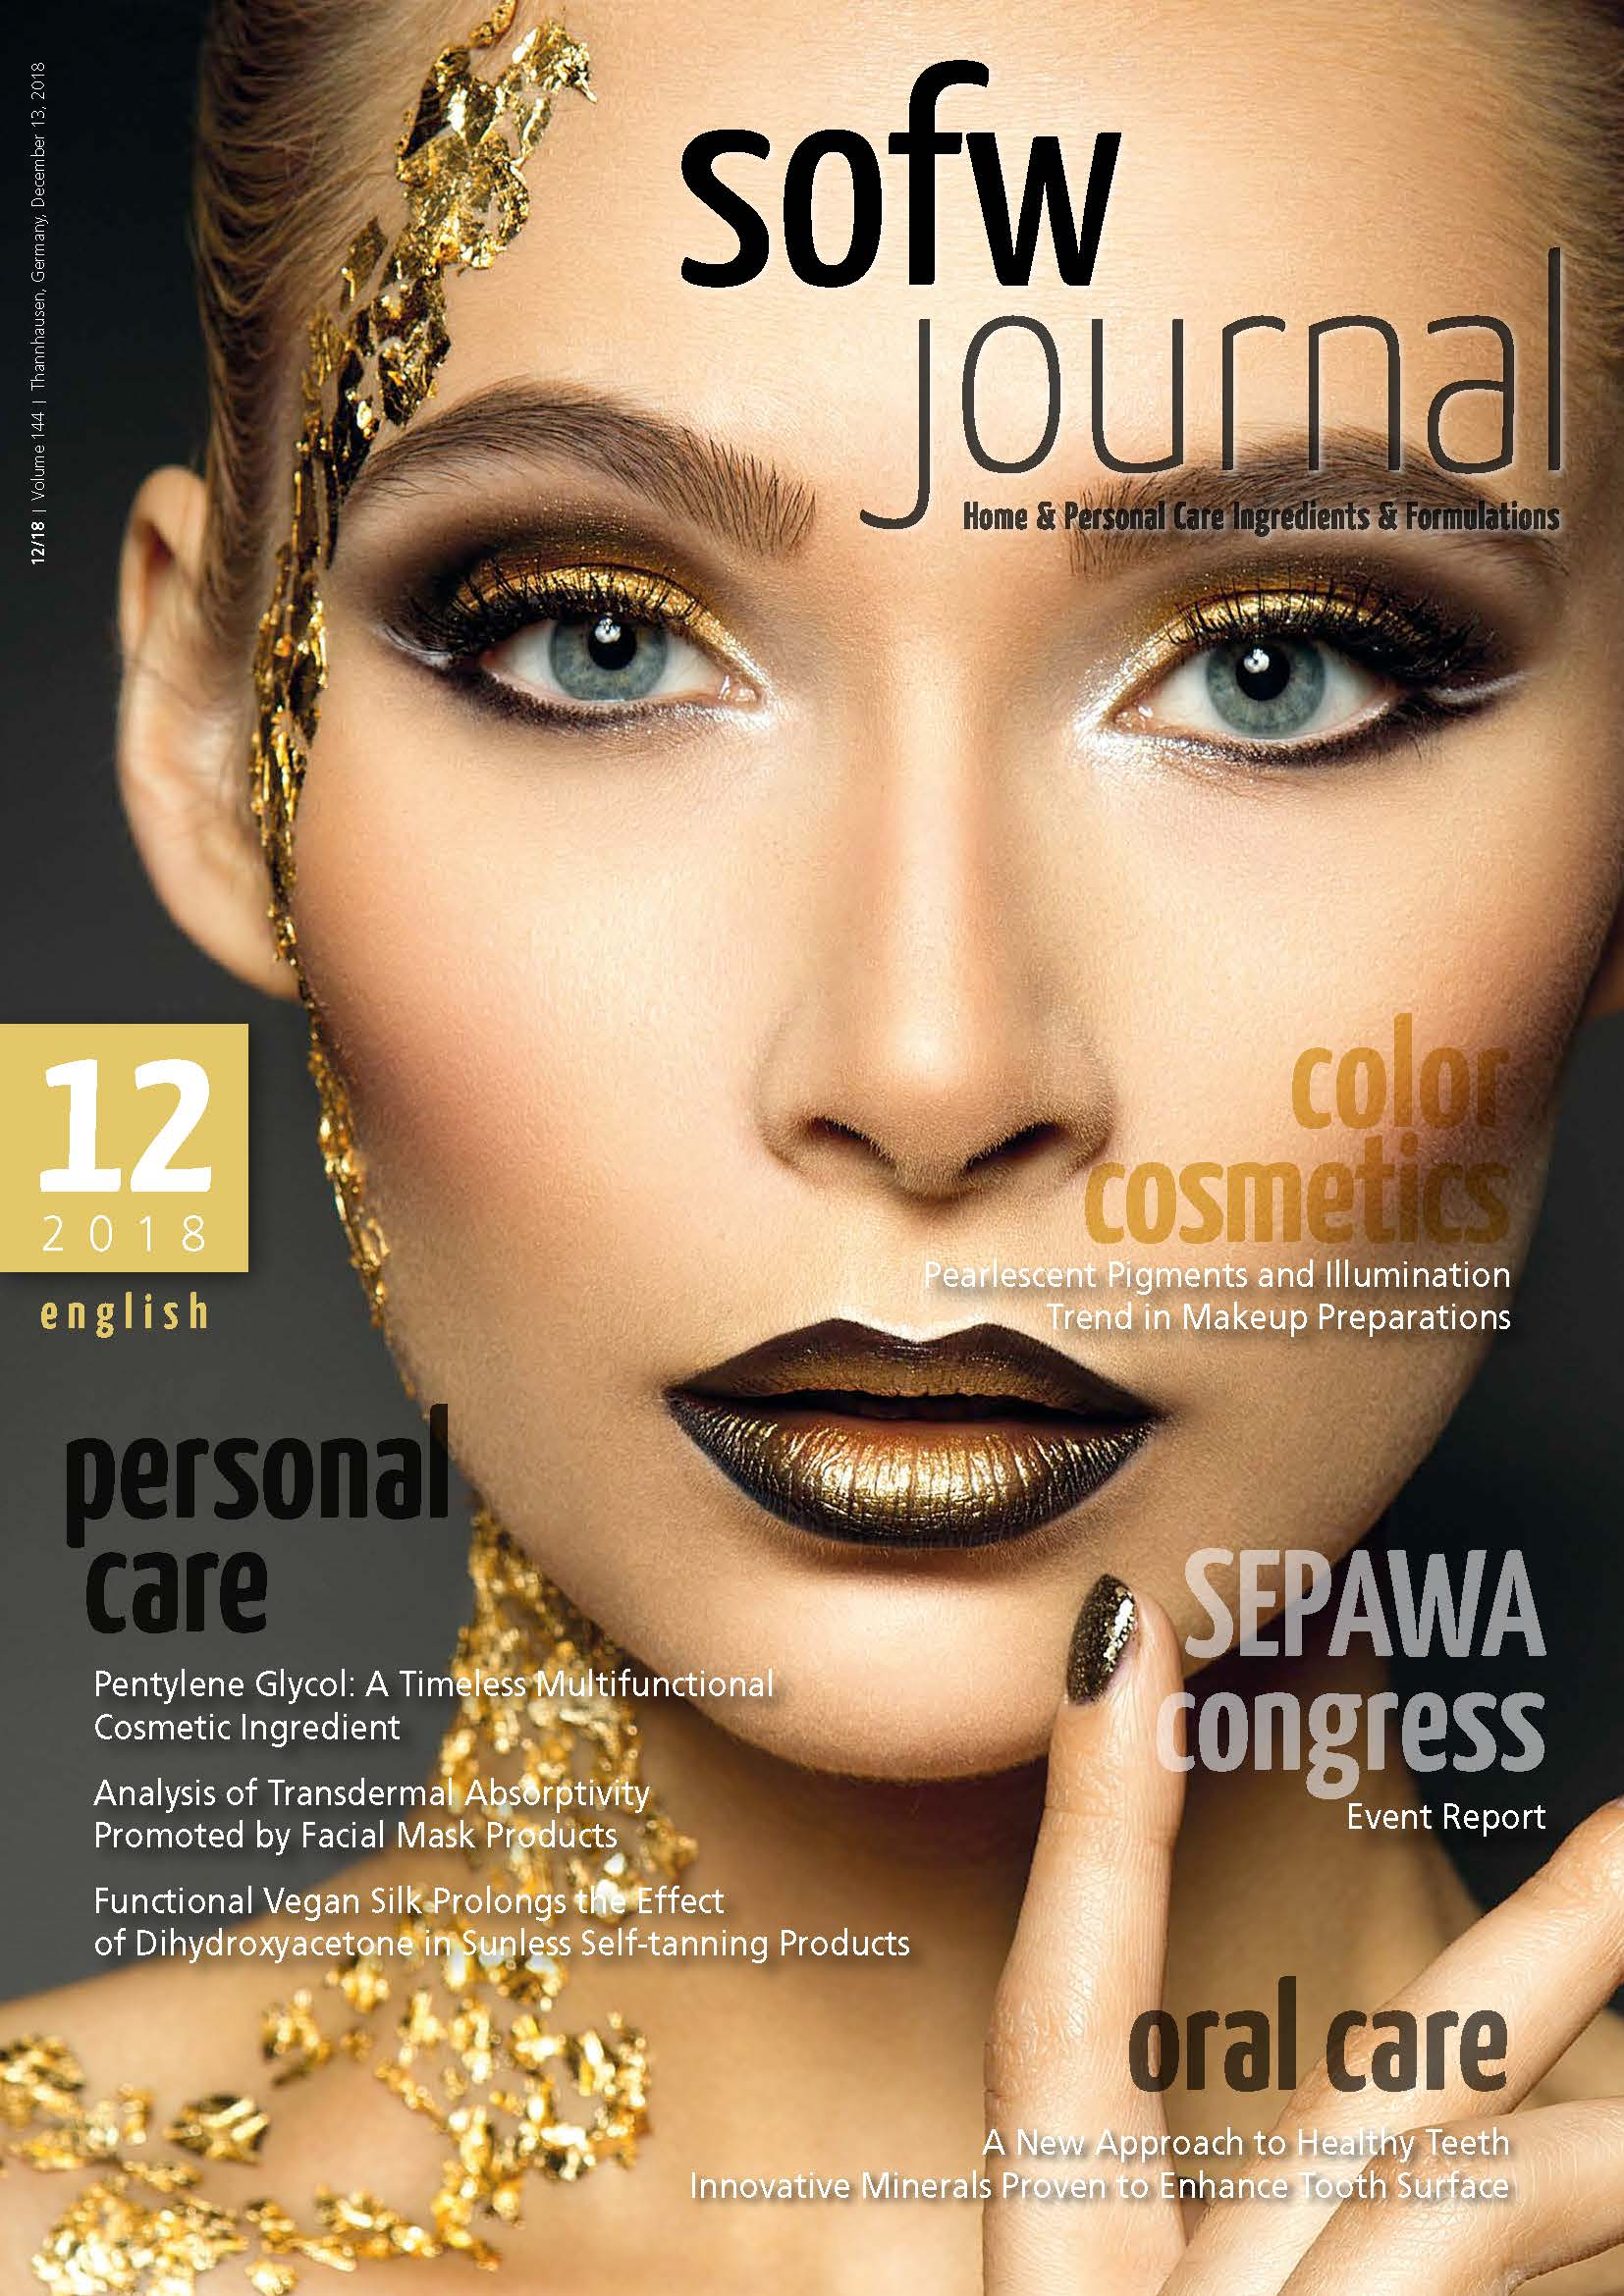 sofwjournal_en_2018_12_cover